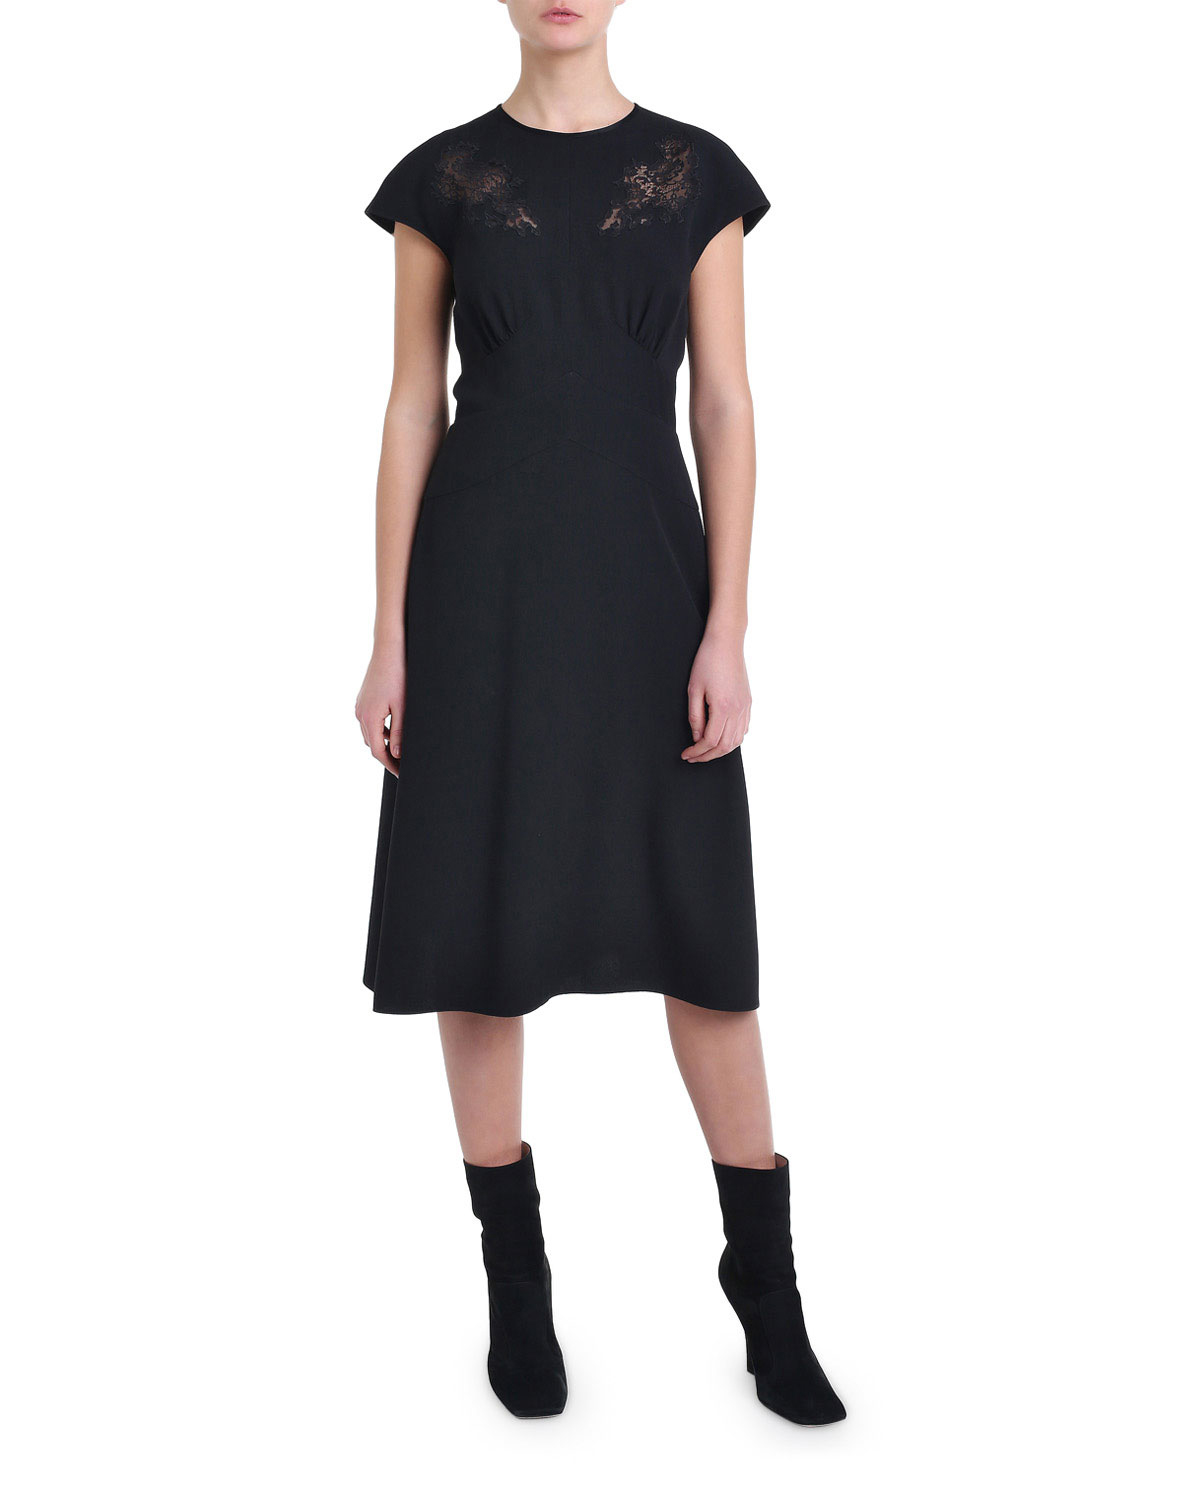 Fendi Cap-Sleeve Lace Cocktail Dress